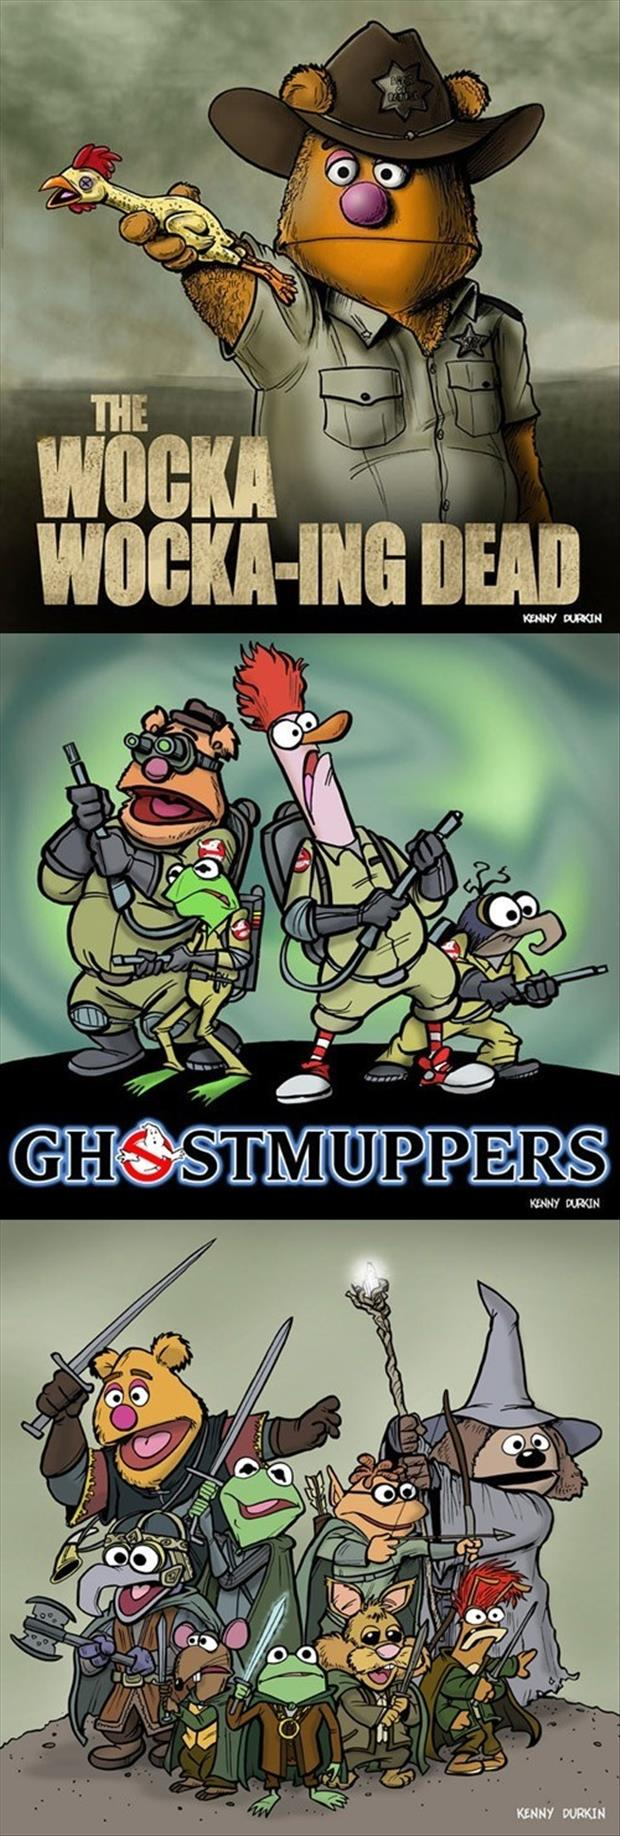 funny muppets